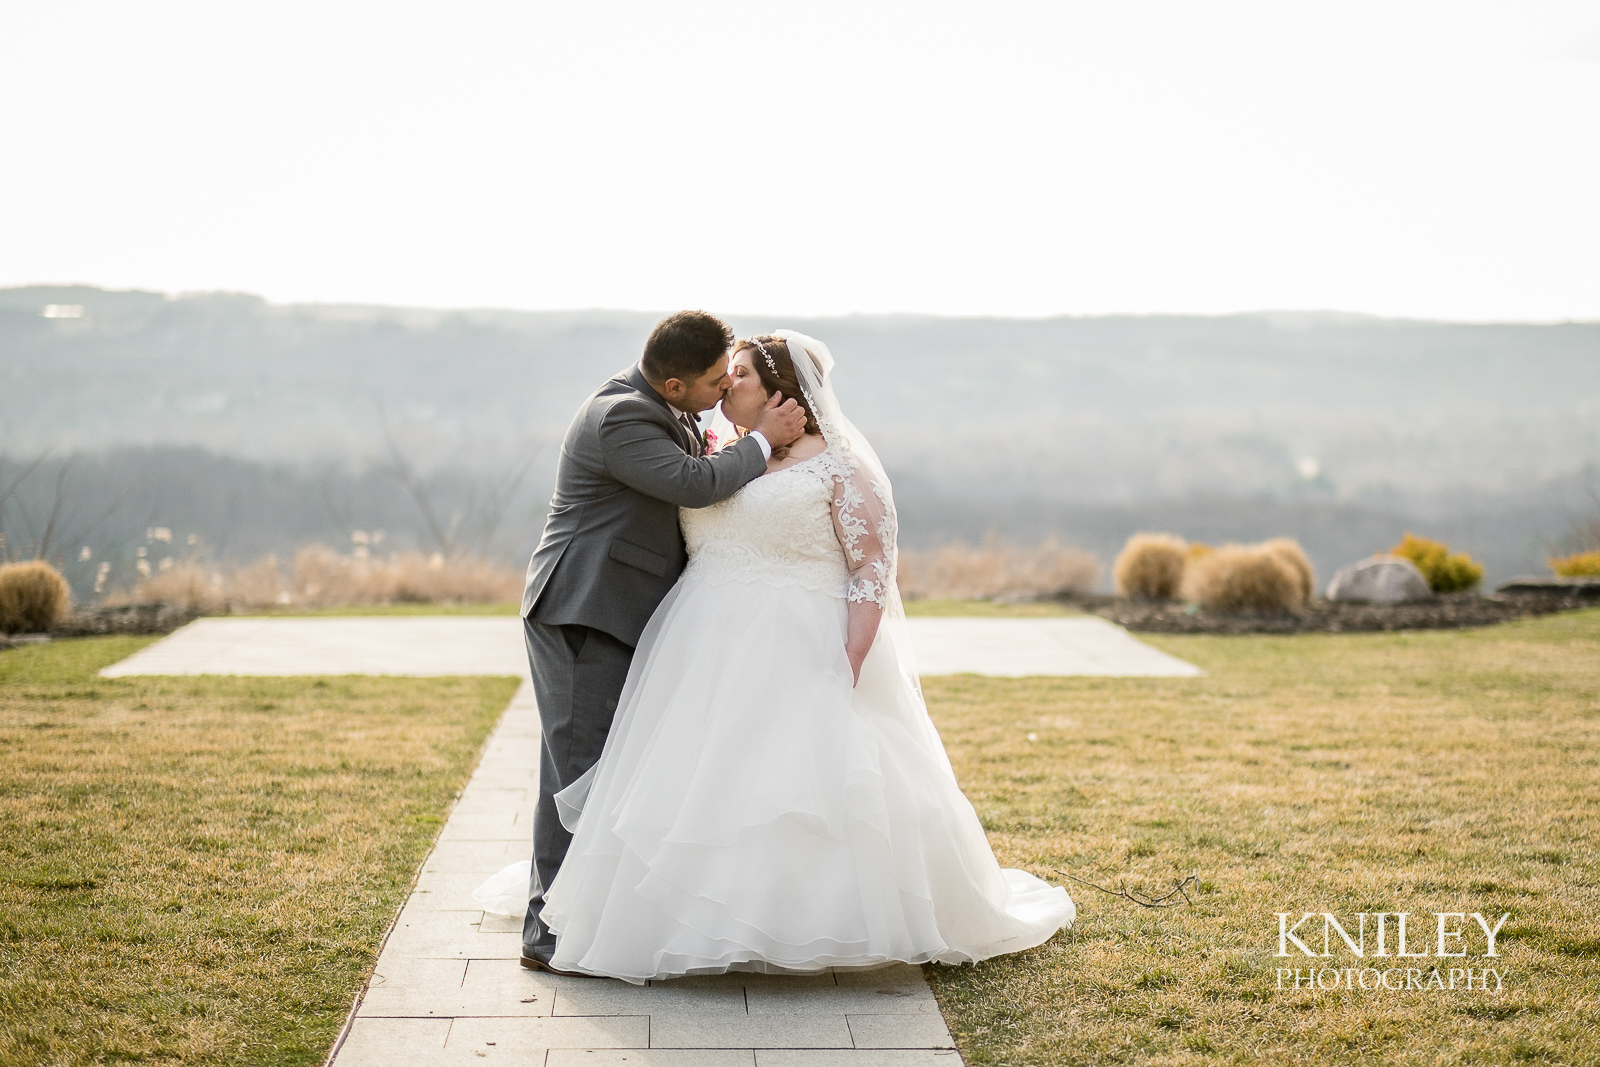 060b - Woodcliff Hotel - Rochester NY wedding photo - Kniley Photography.jpg